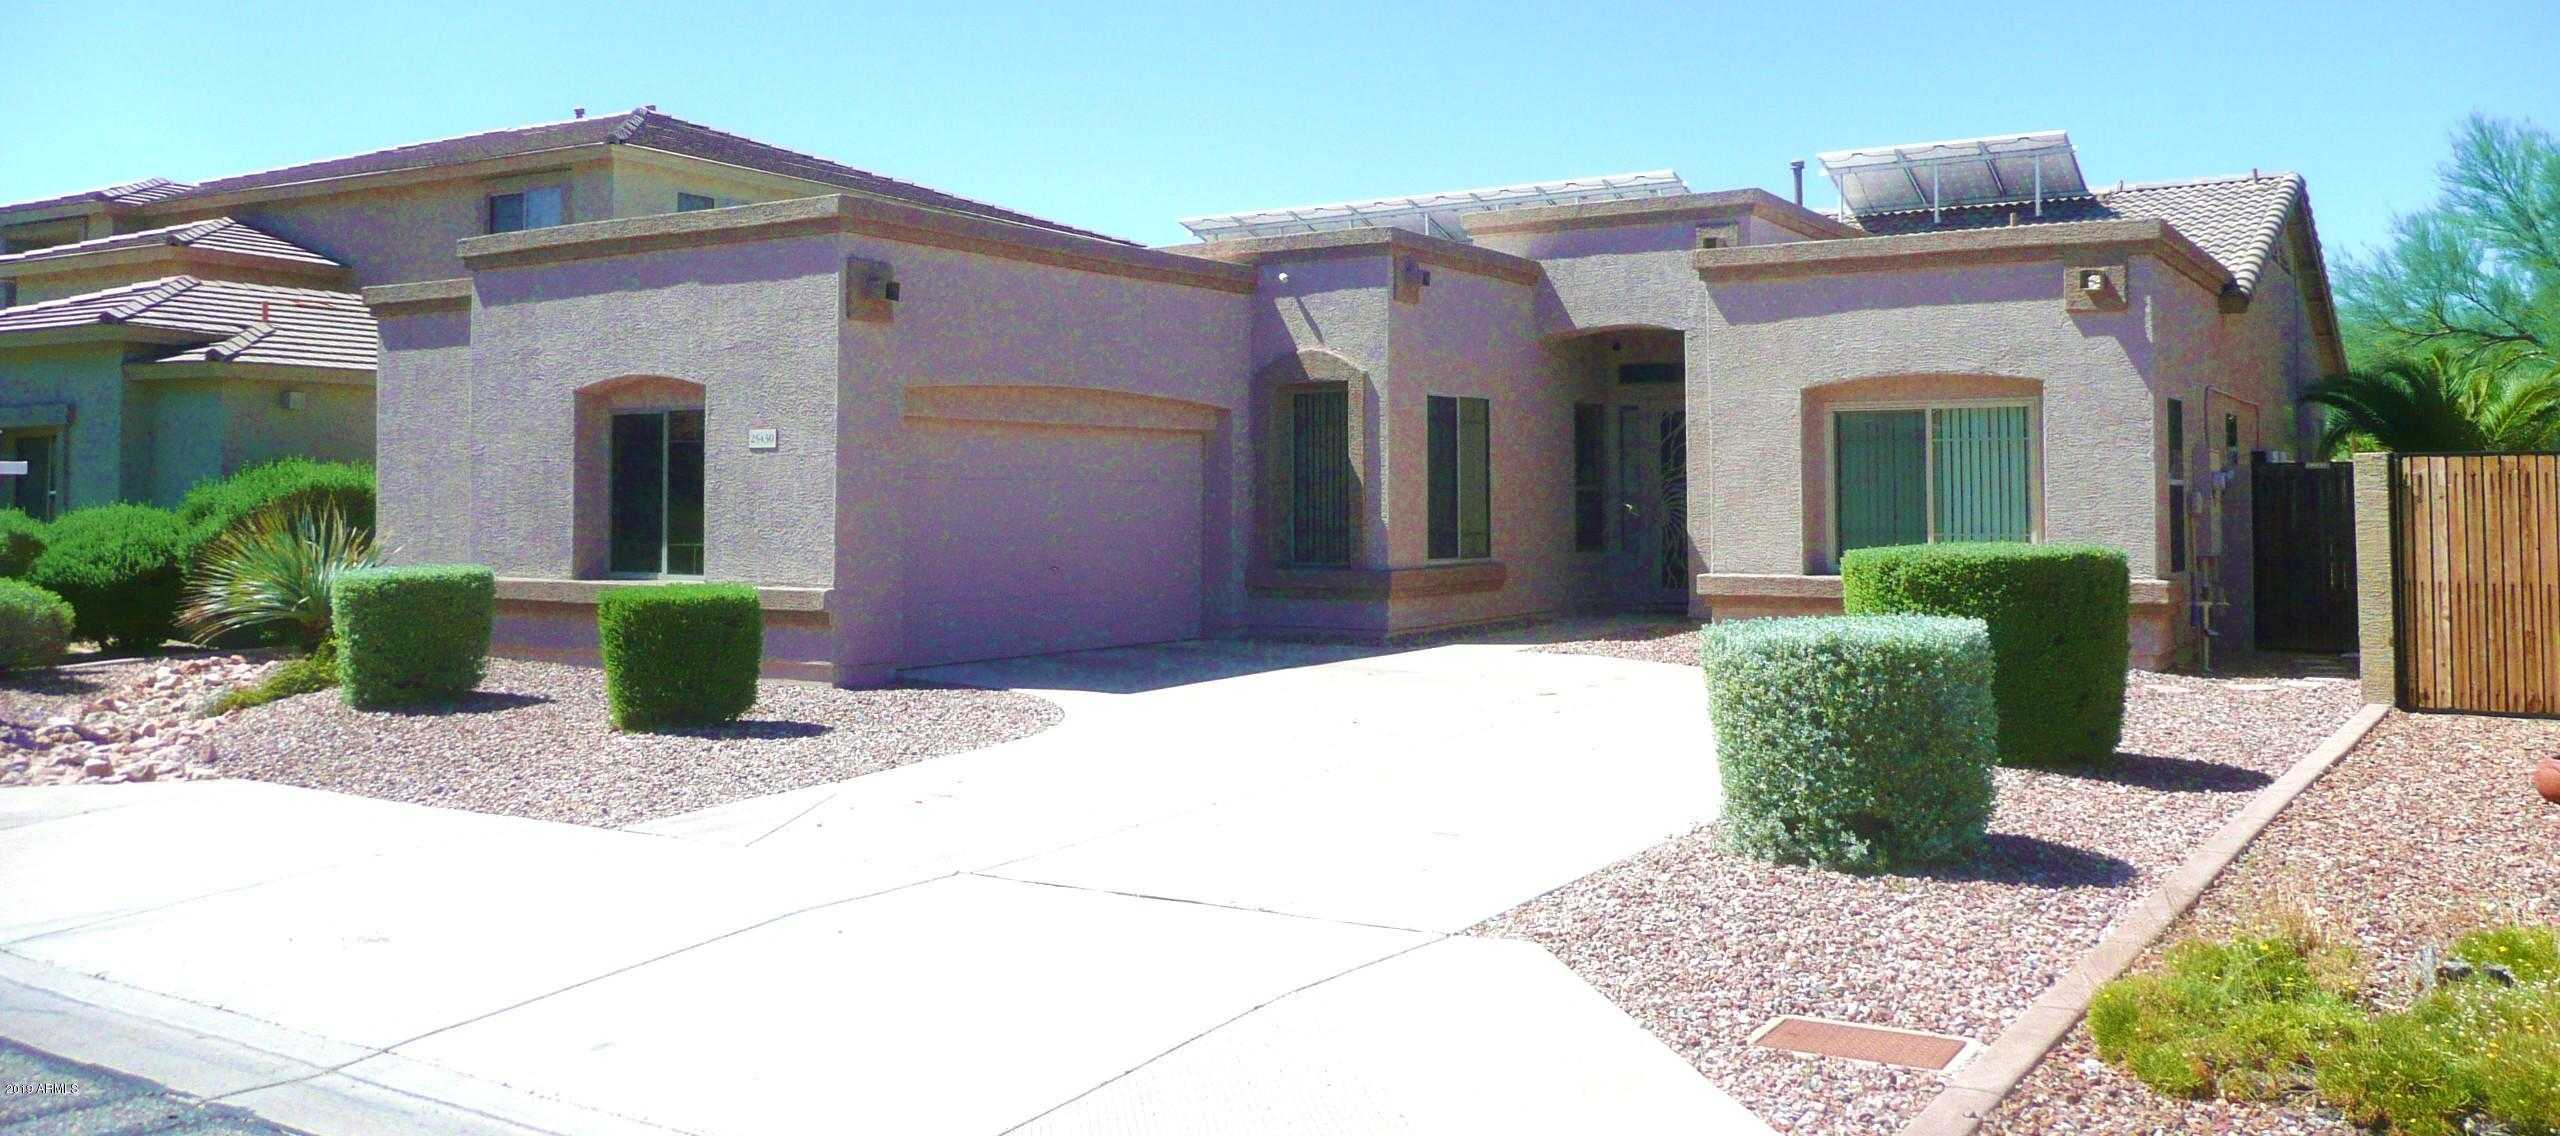 $410,000 - 3Br/2Ba - Home for Sale in Stetson Hills, Glendale